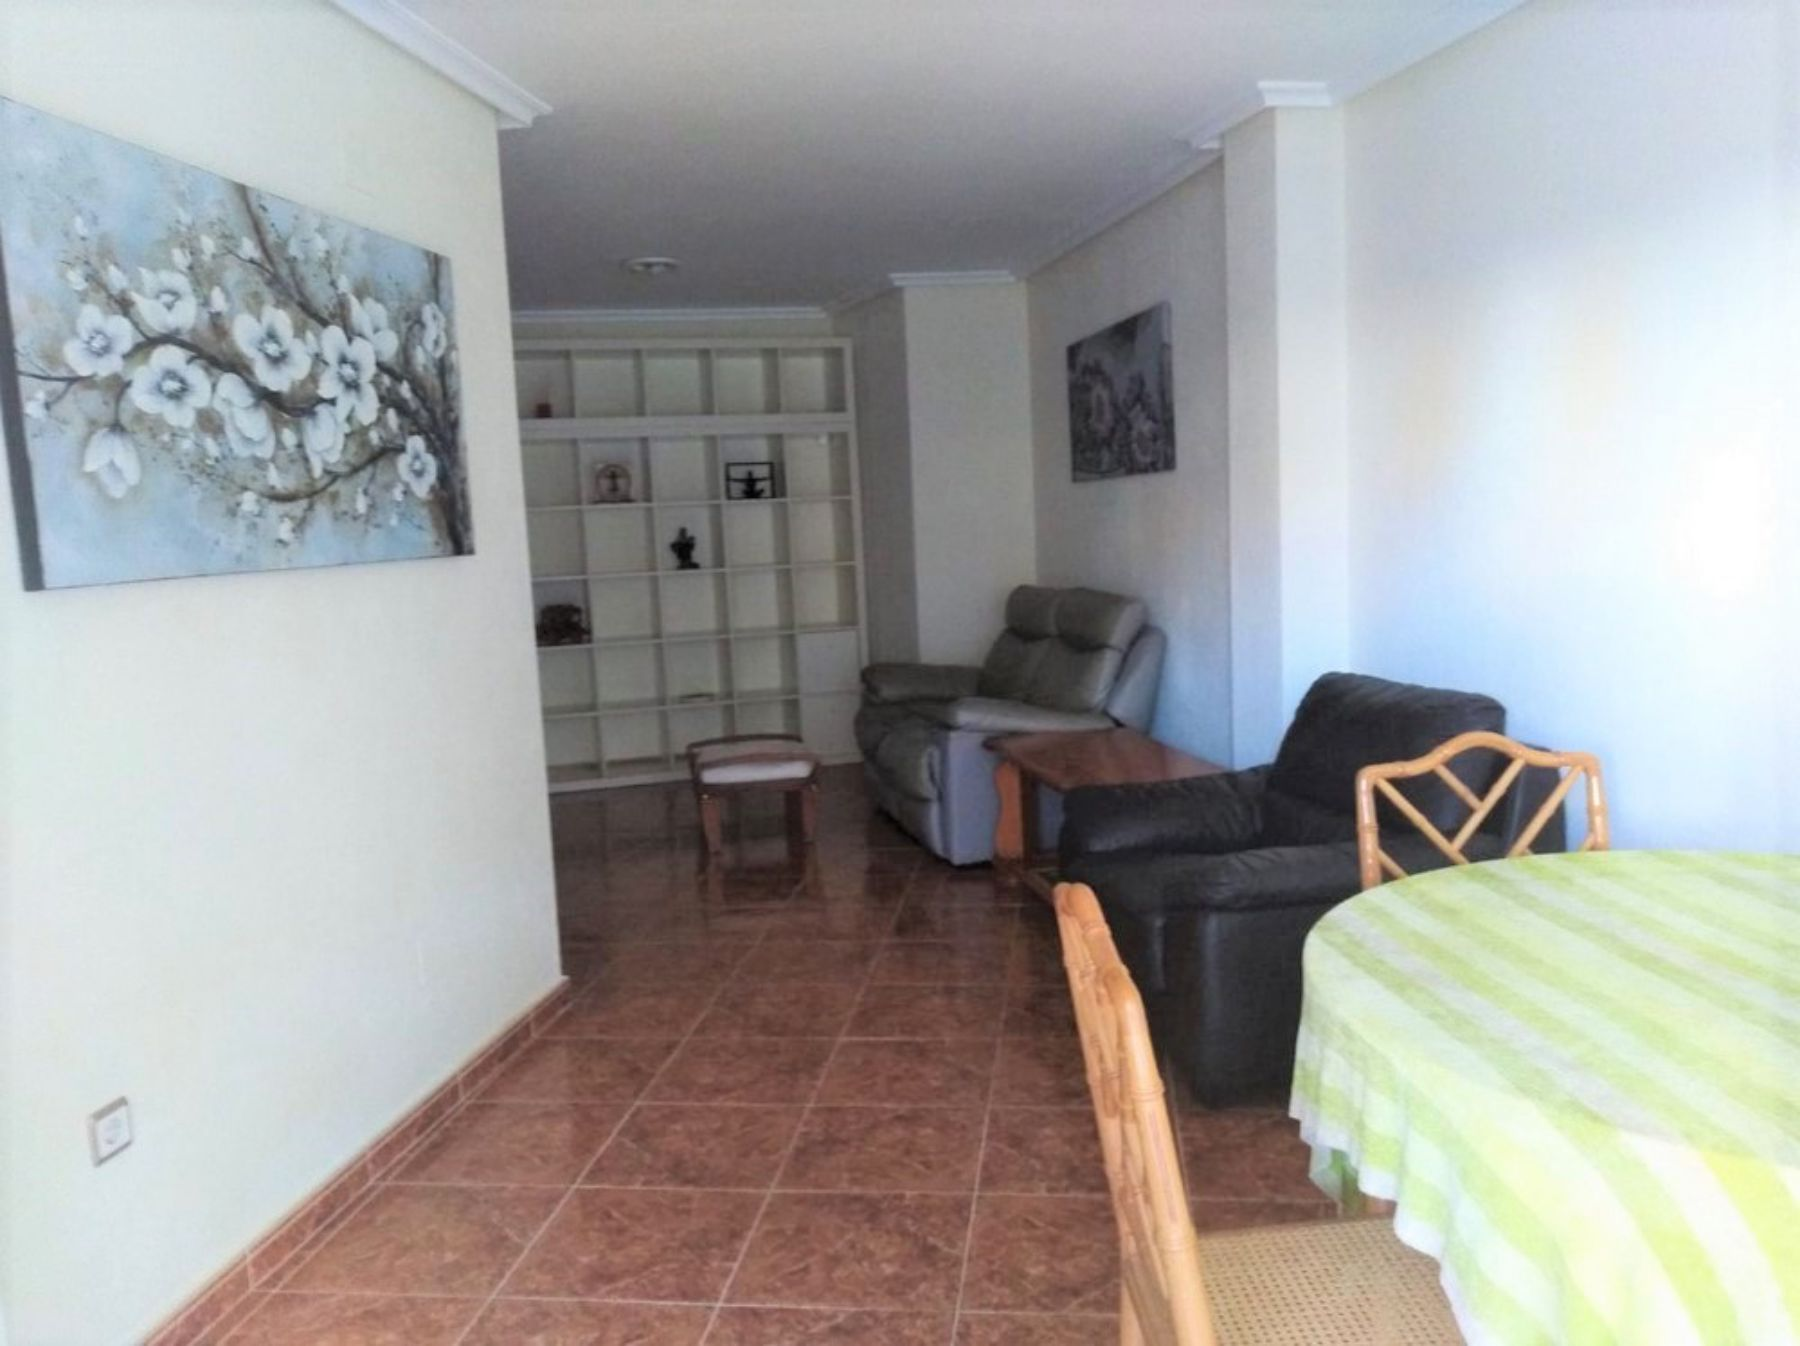 3 Bedrooms Apartment For Sale Close to La Mata Beach